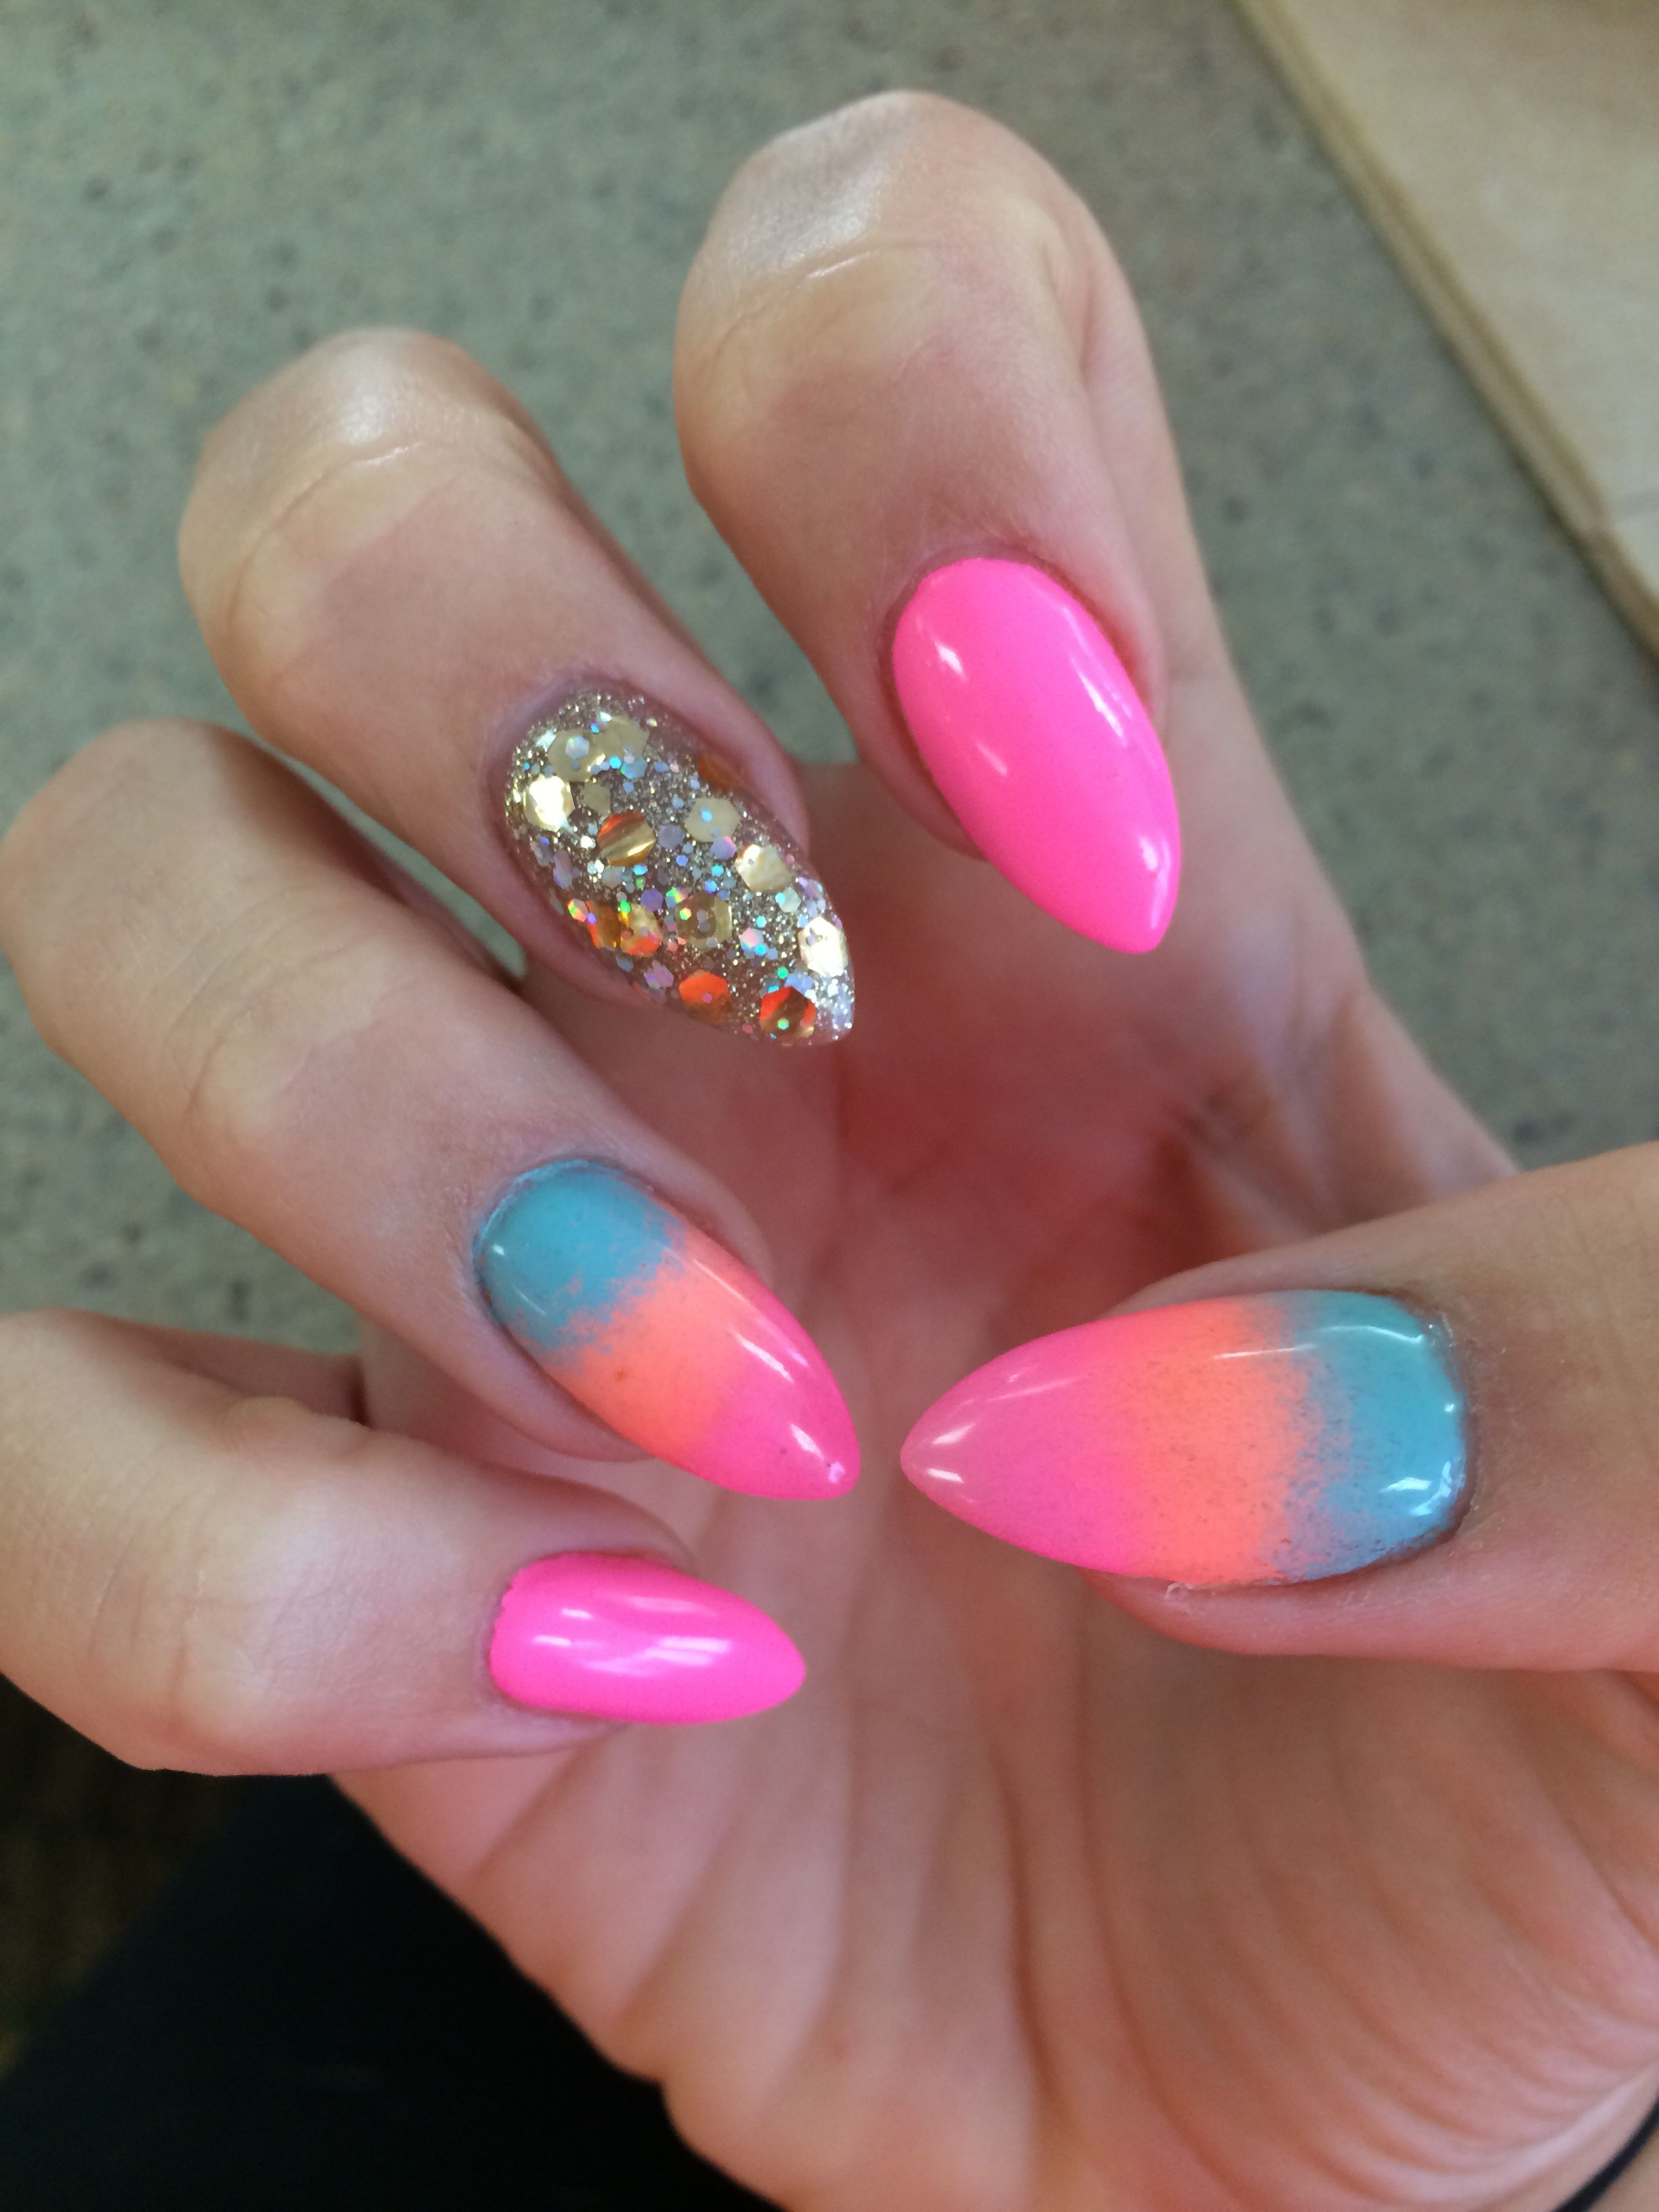 Acrylic nail designs for going south! Love them! So summery and beautiful. #almondnails #neonnails